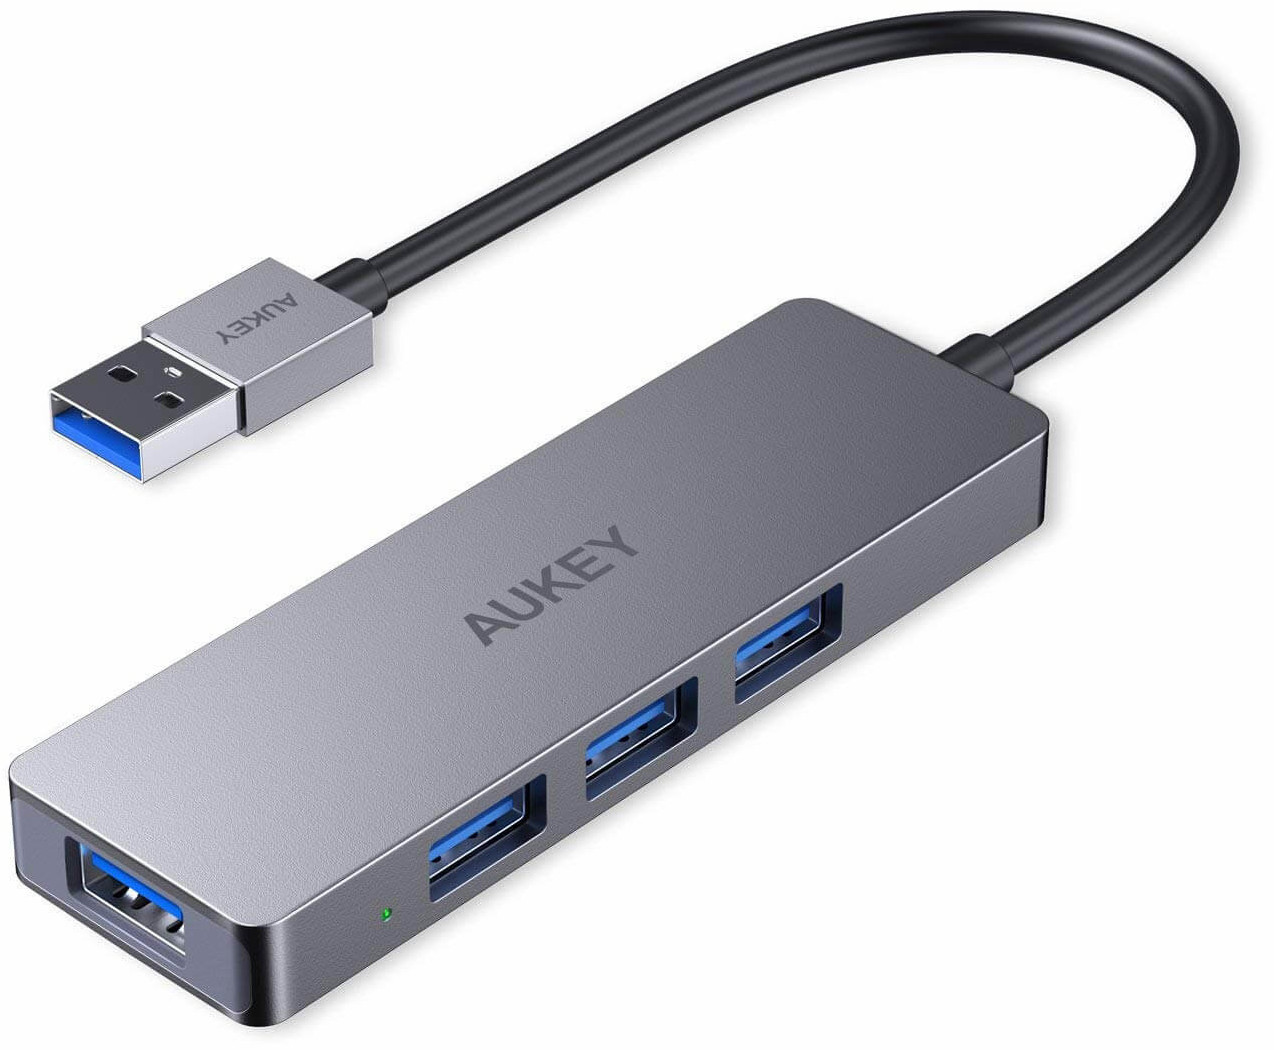 Image of Aukey 4 Port USB 3.0 Hub (CB-H36)